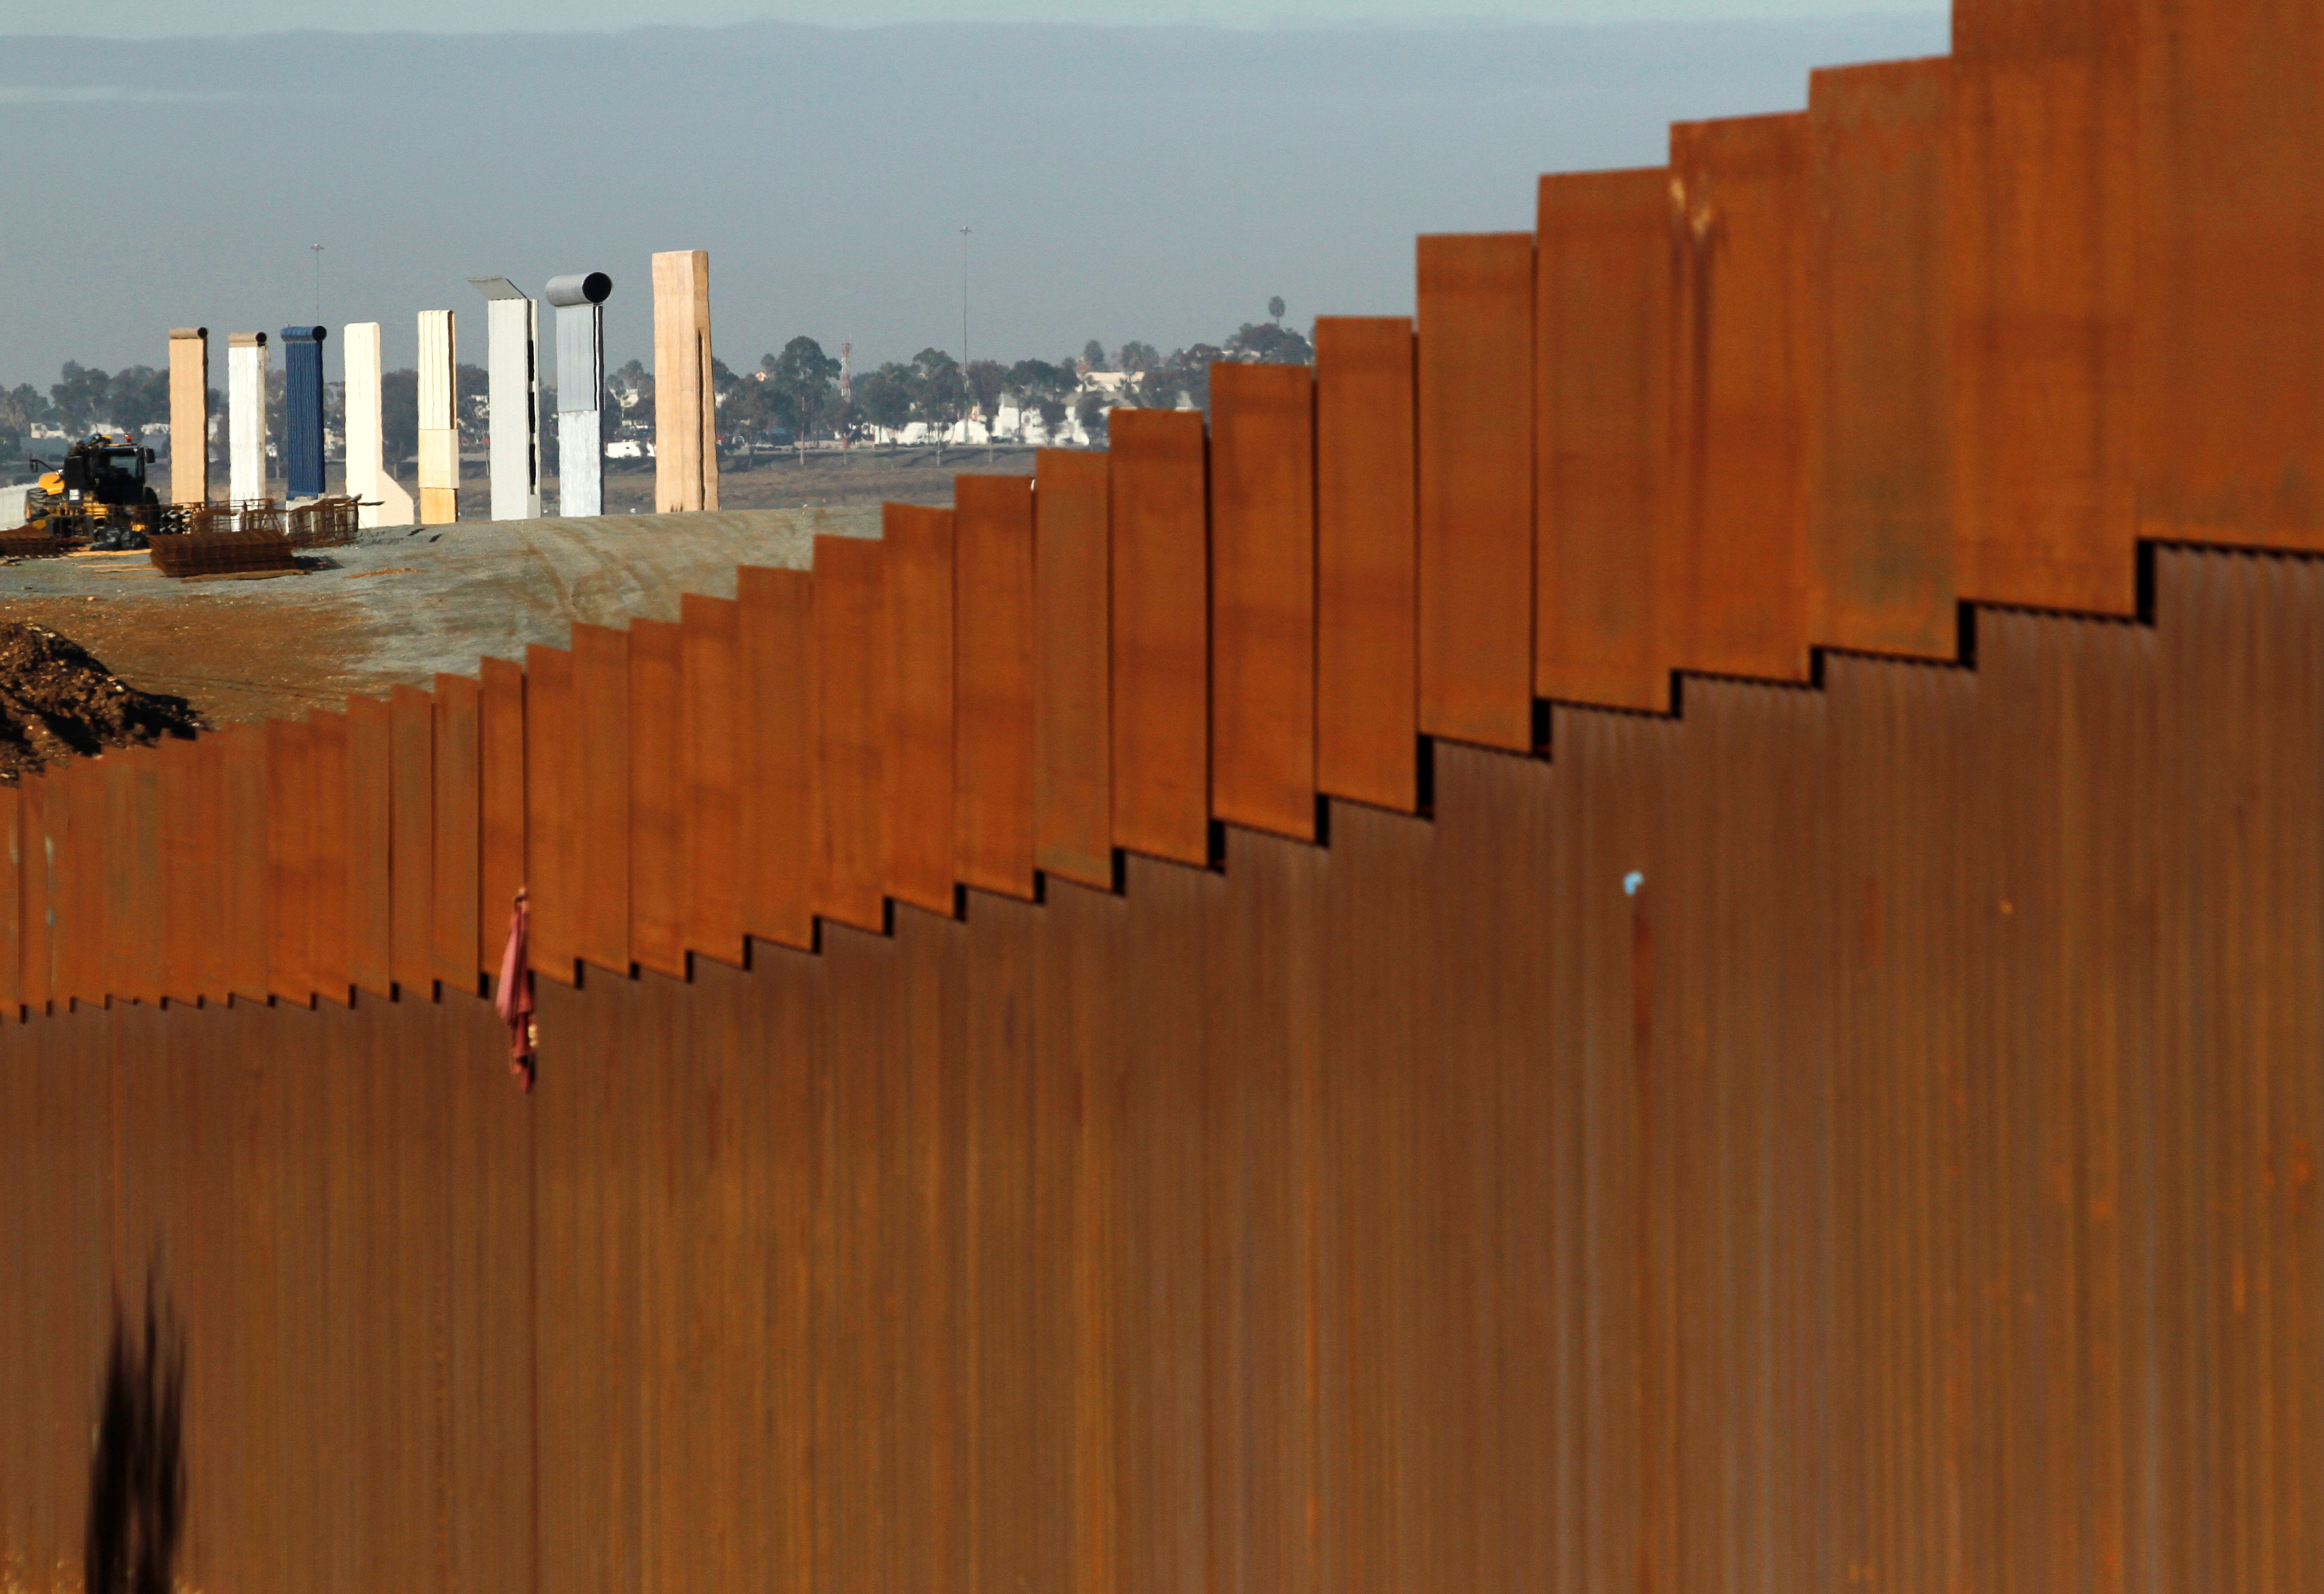 The prototypes for U.S. President Donald Trump's border wall are seen behind the border fence between Mexico and the United States, in Tijuana, Mexico, Jan. 7, 2019.